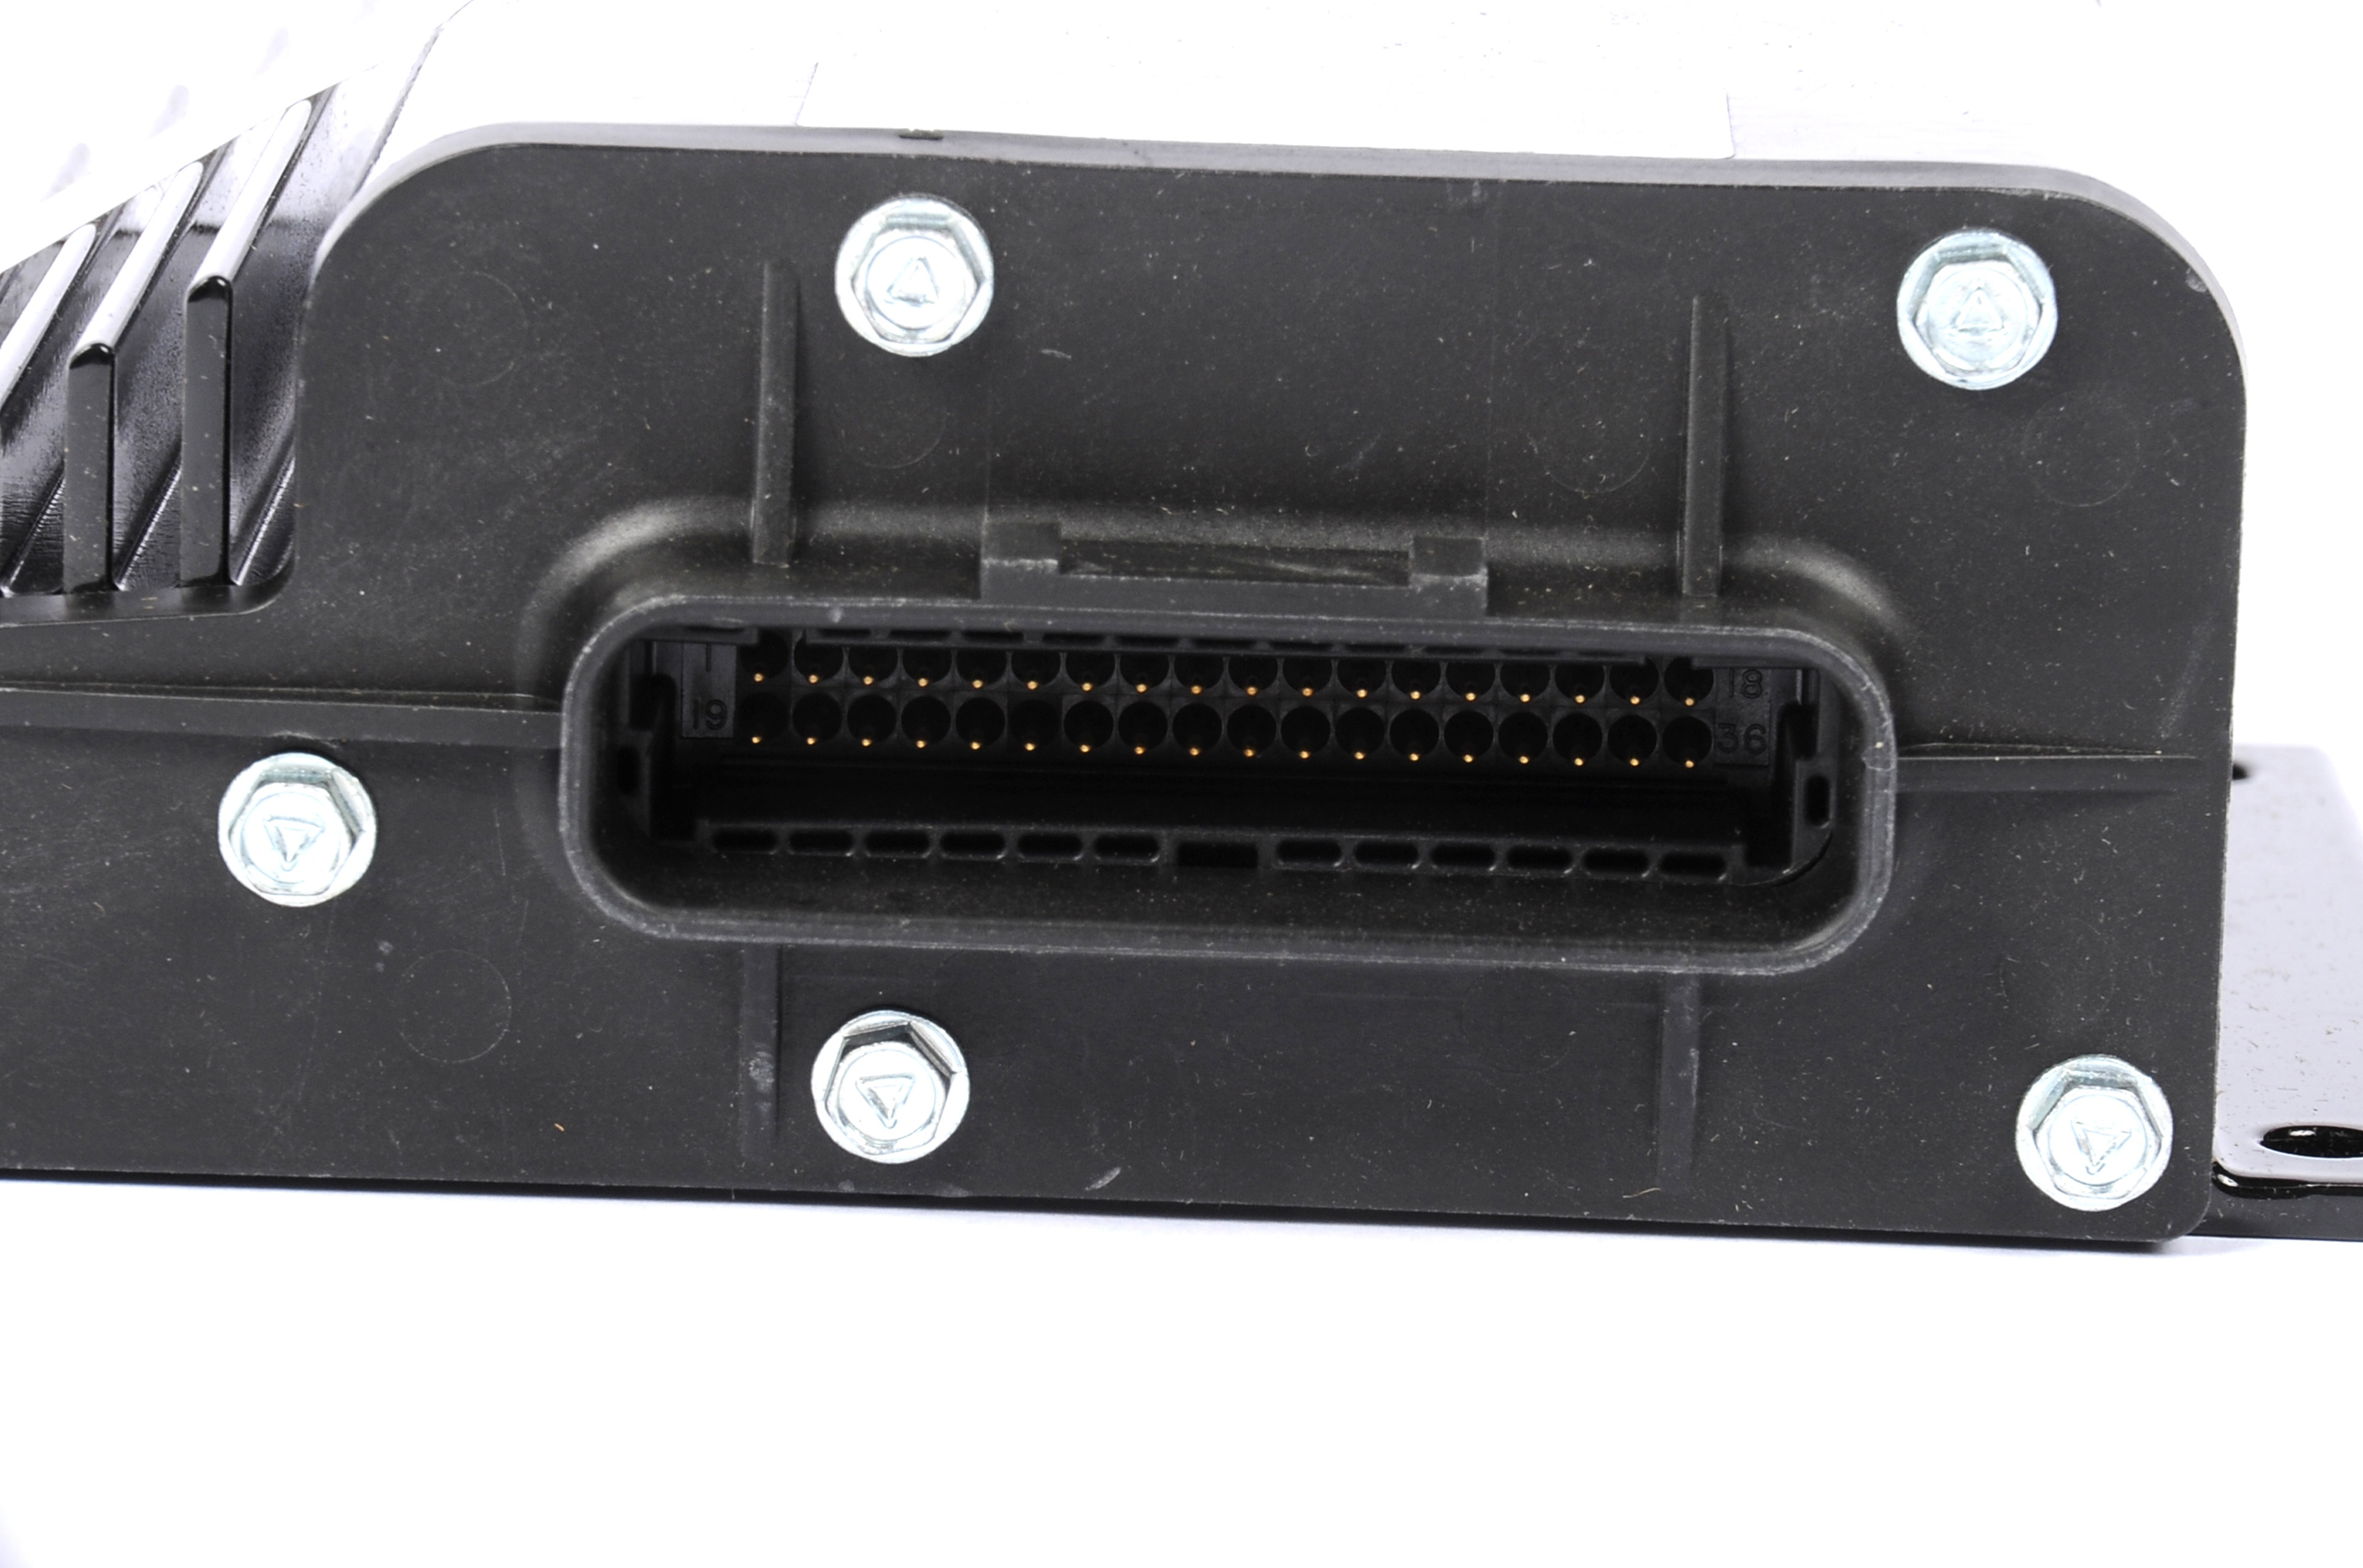 ACDELCO OE SERVICE - Fuel Injector Control Module - DCB 52372384